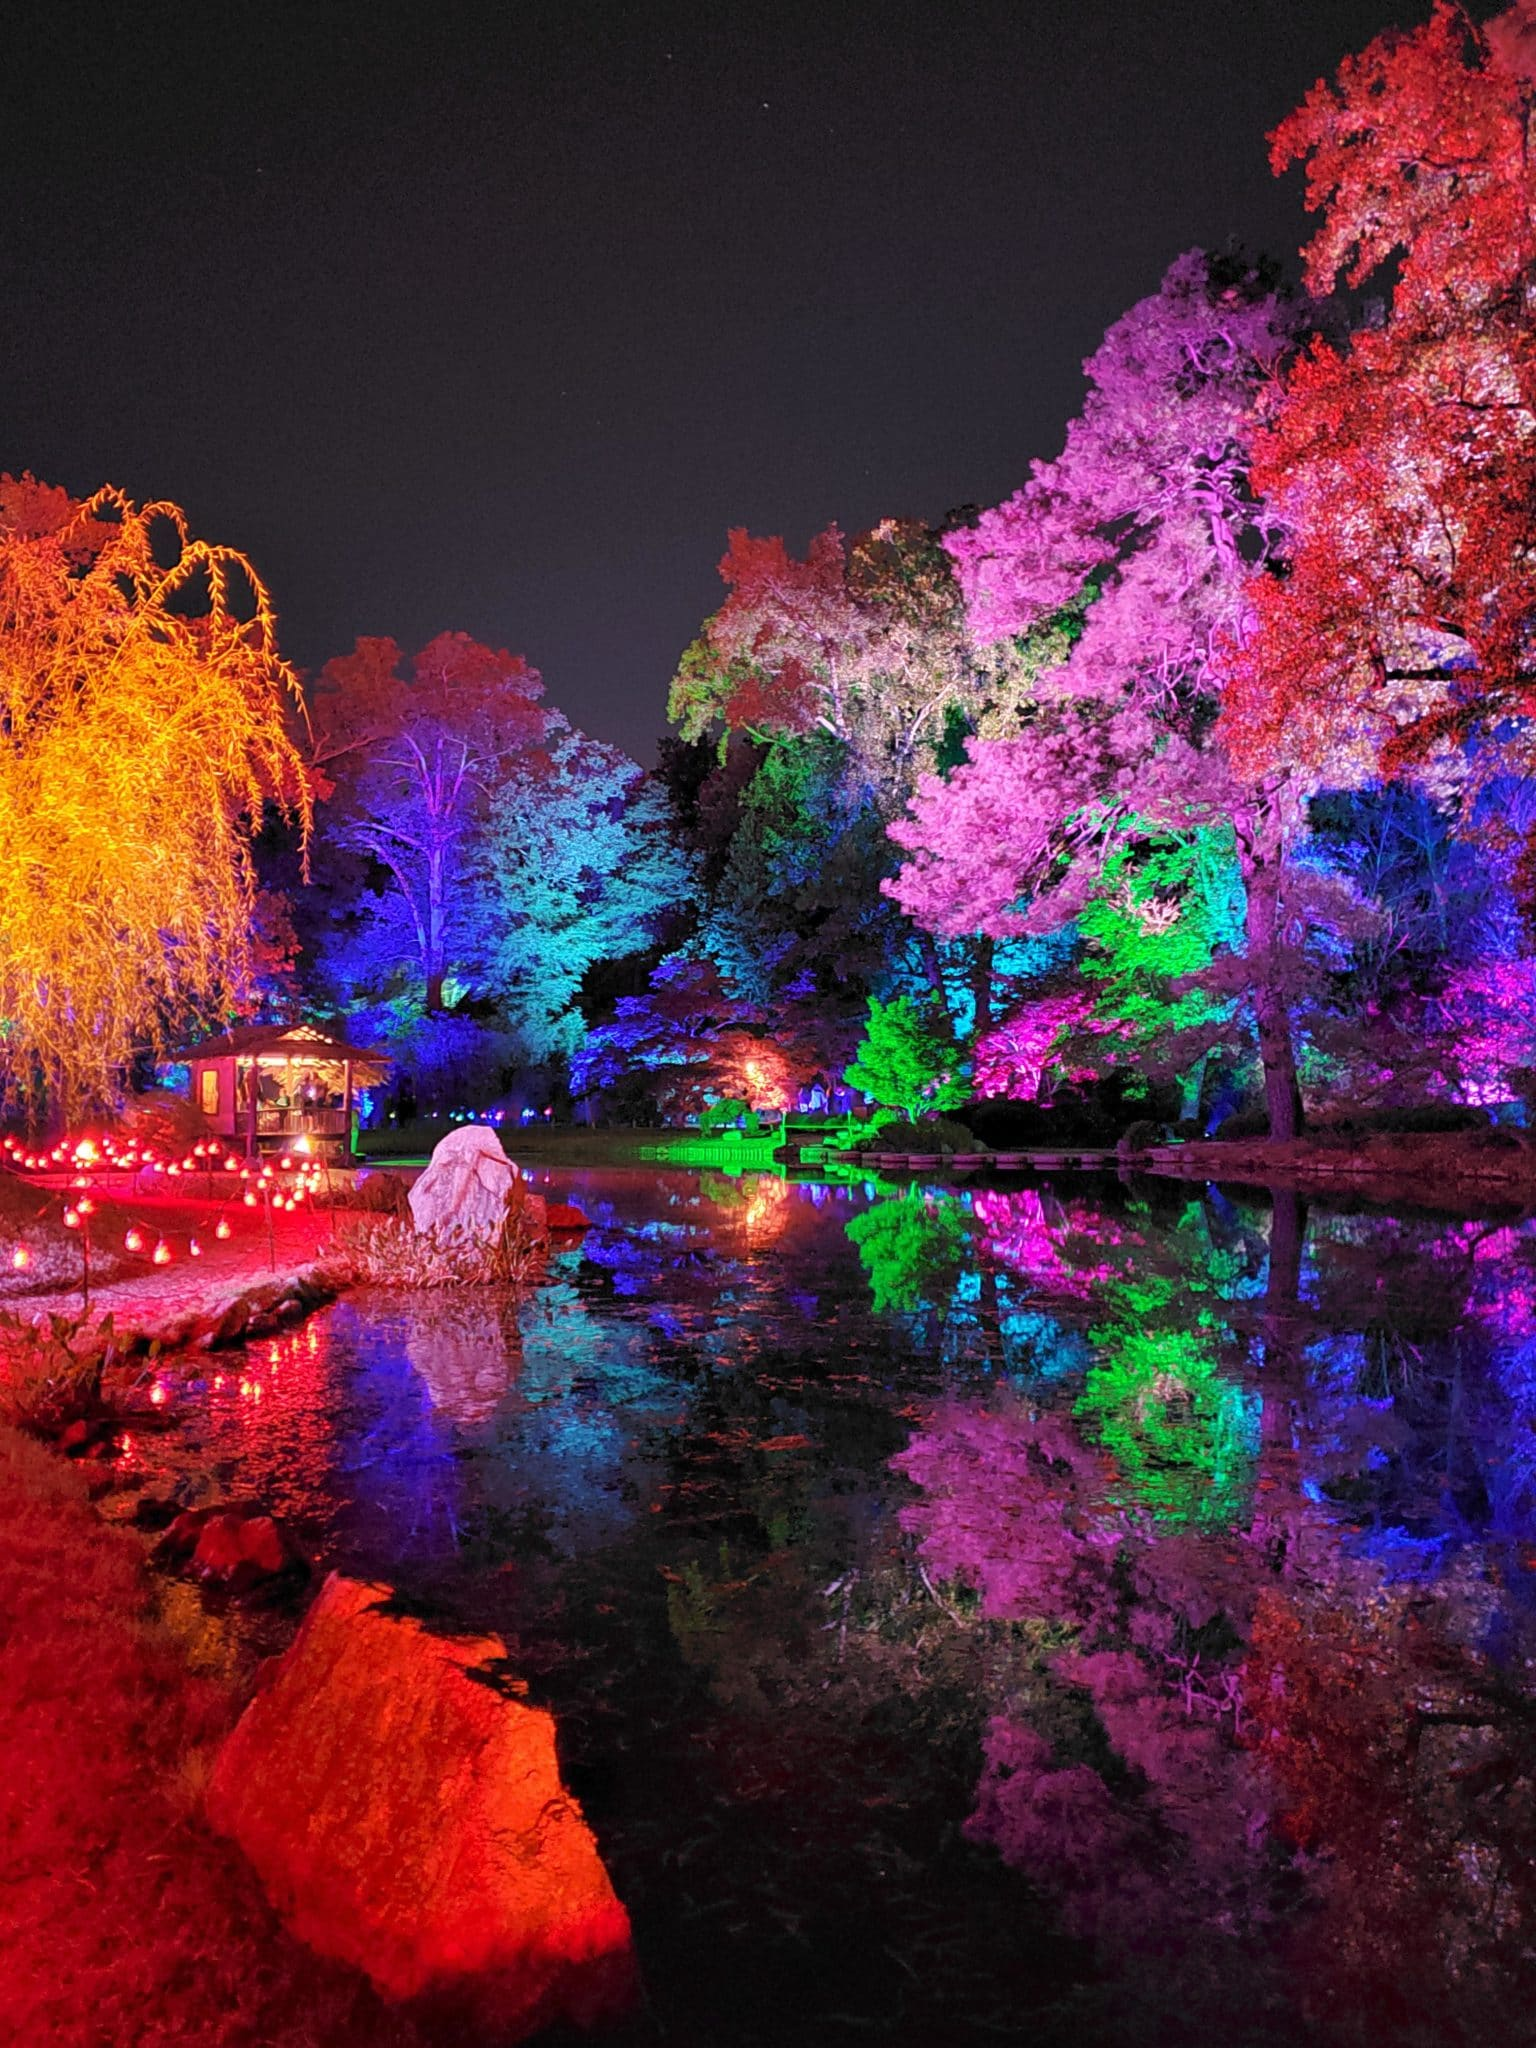 Trees lit in vibrant colors in the evening.